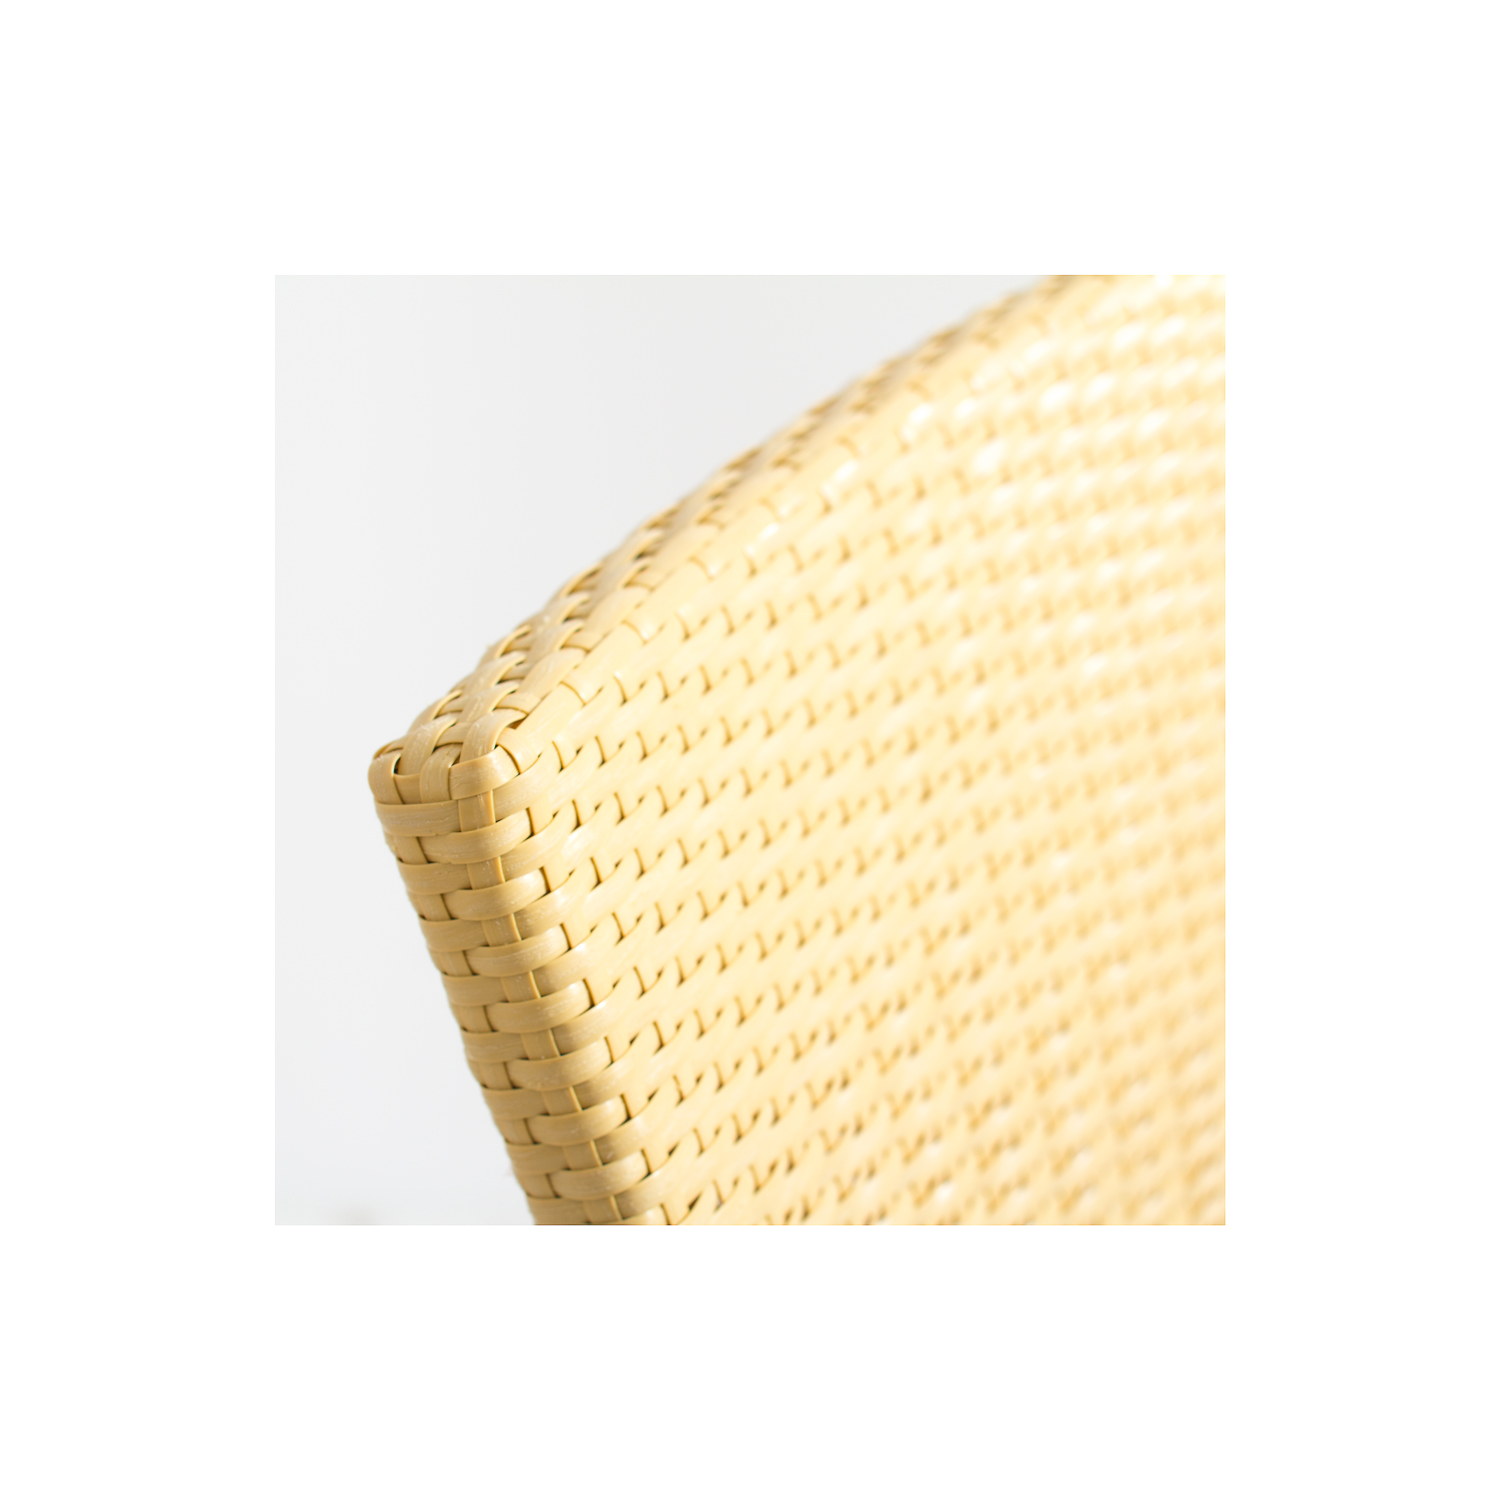 bamboo-wicker-chair-detail.jpg